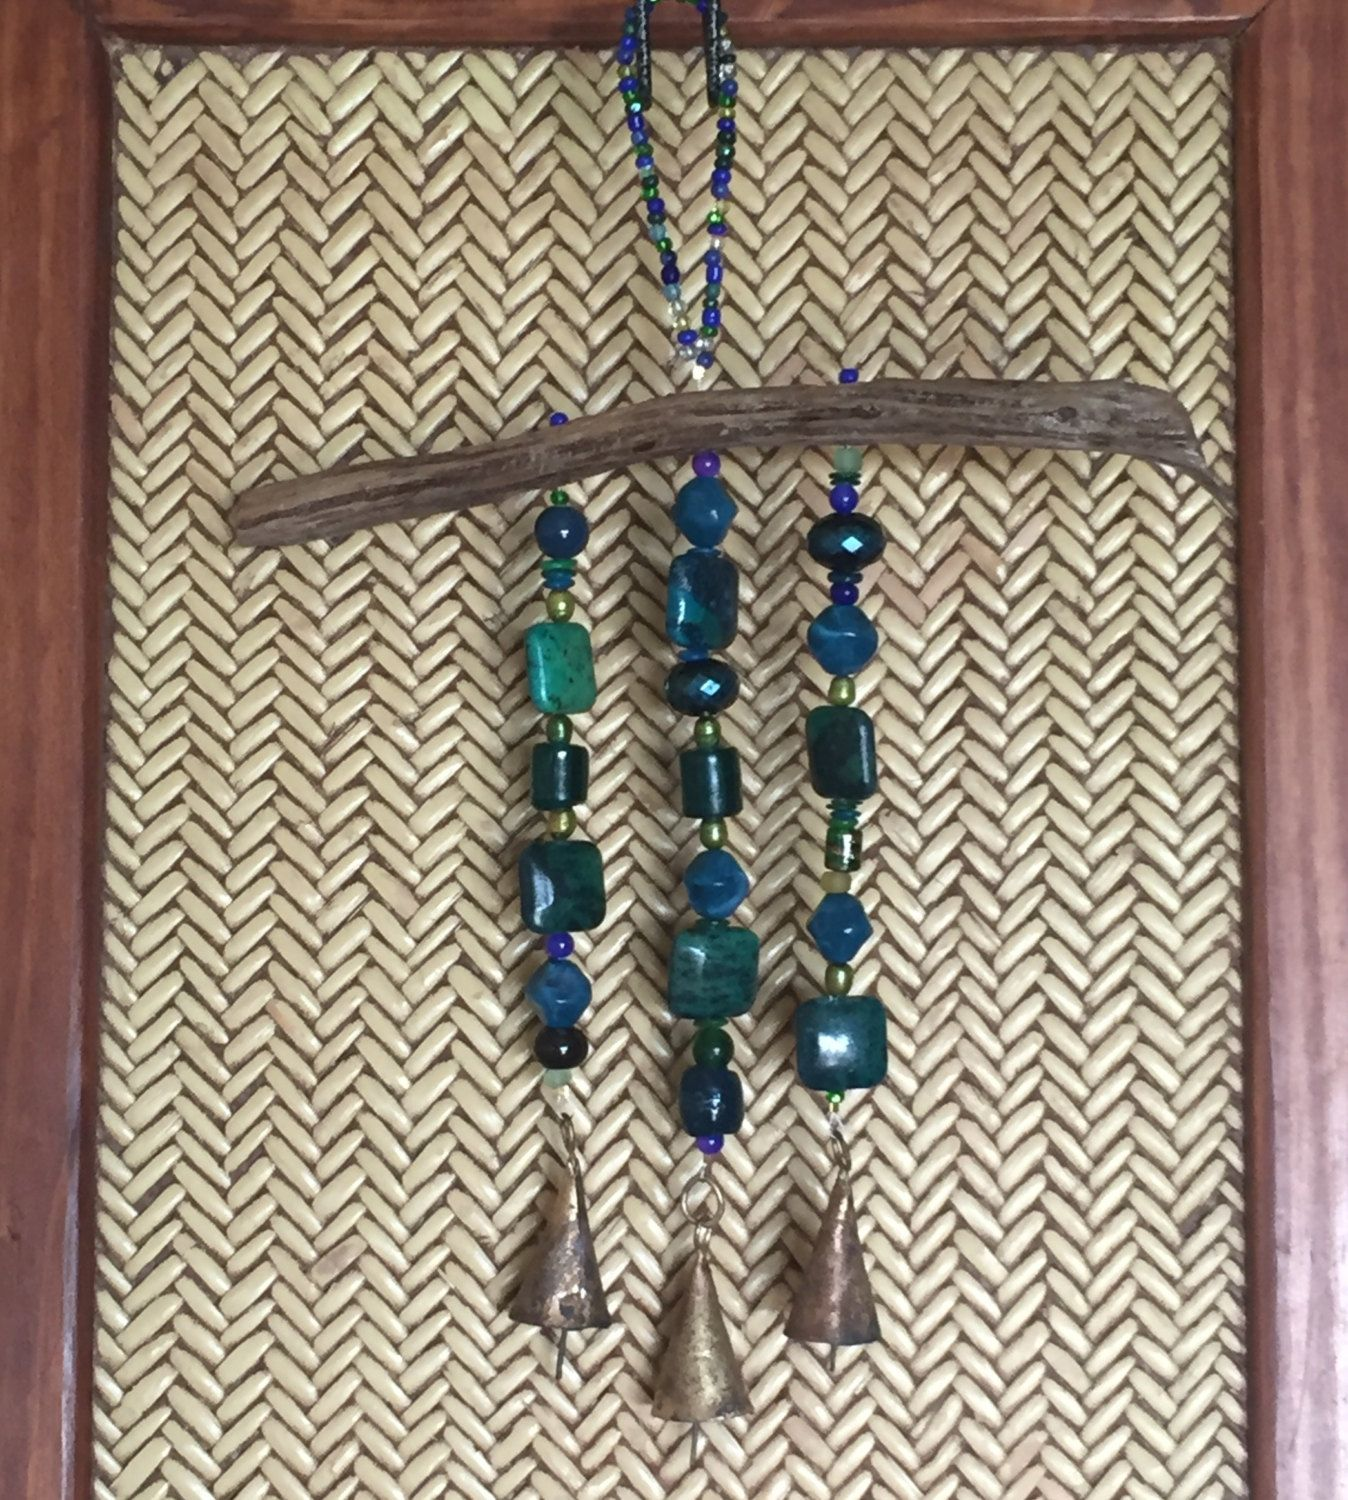 Mobile. Driftwood/bead mobile. Indoor/outdoor décor. Garden art. Wall Hanging. Meditation. Eco-friendly and upcycled. Turquoise beads. Bells by NorthwestSpindrift on Etsy